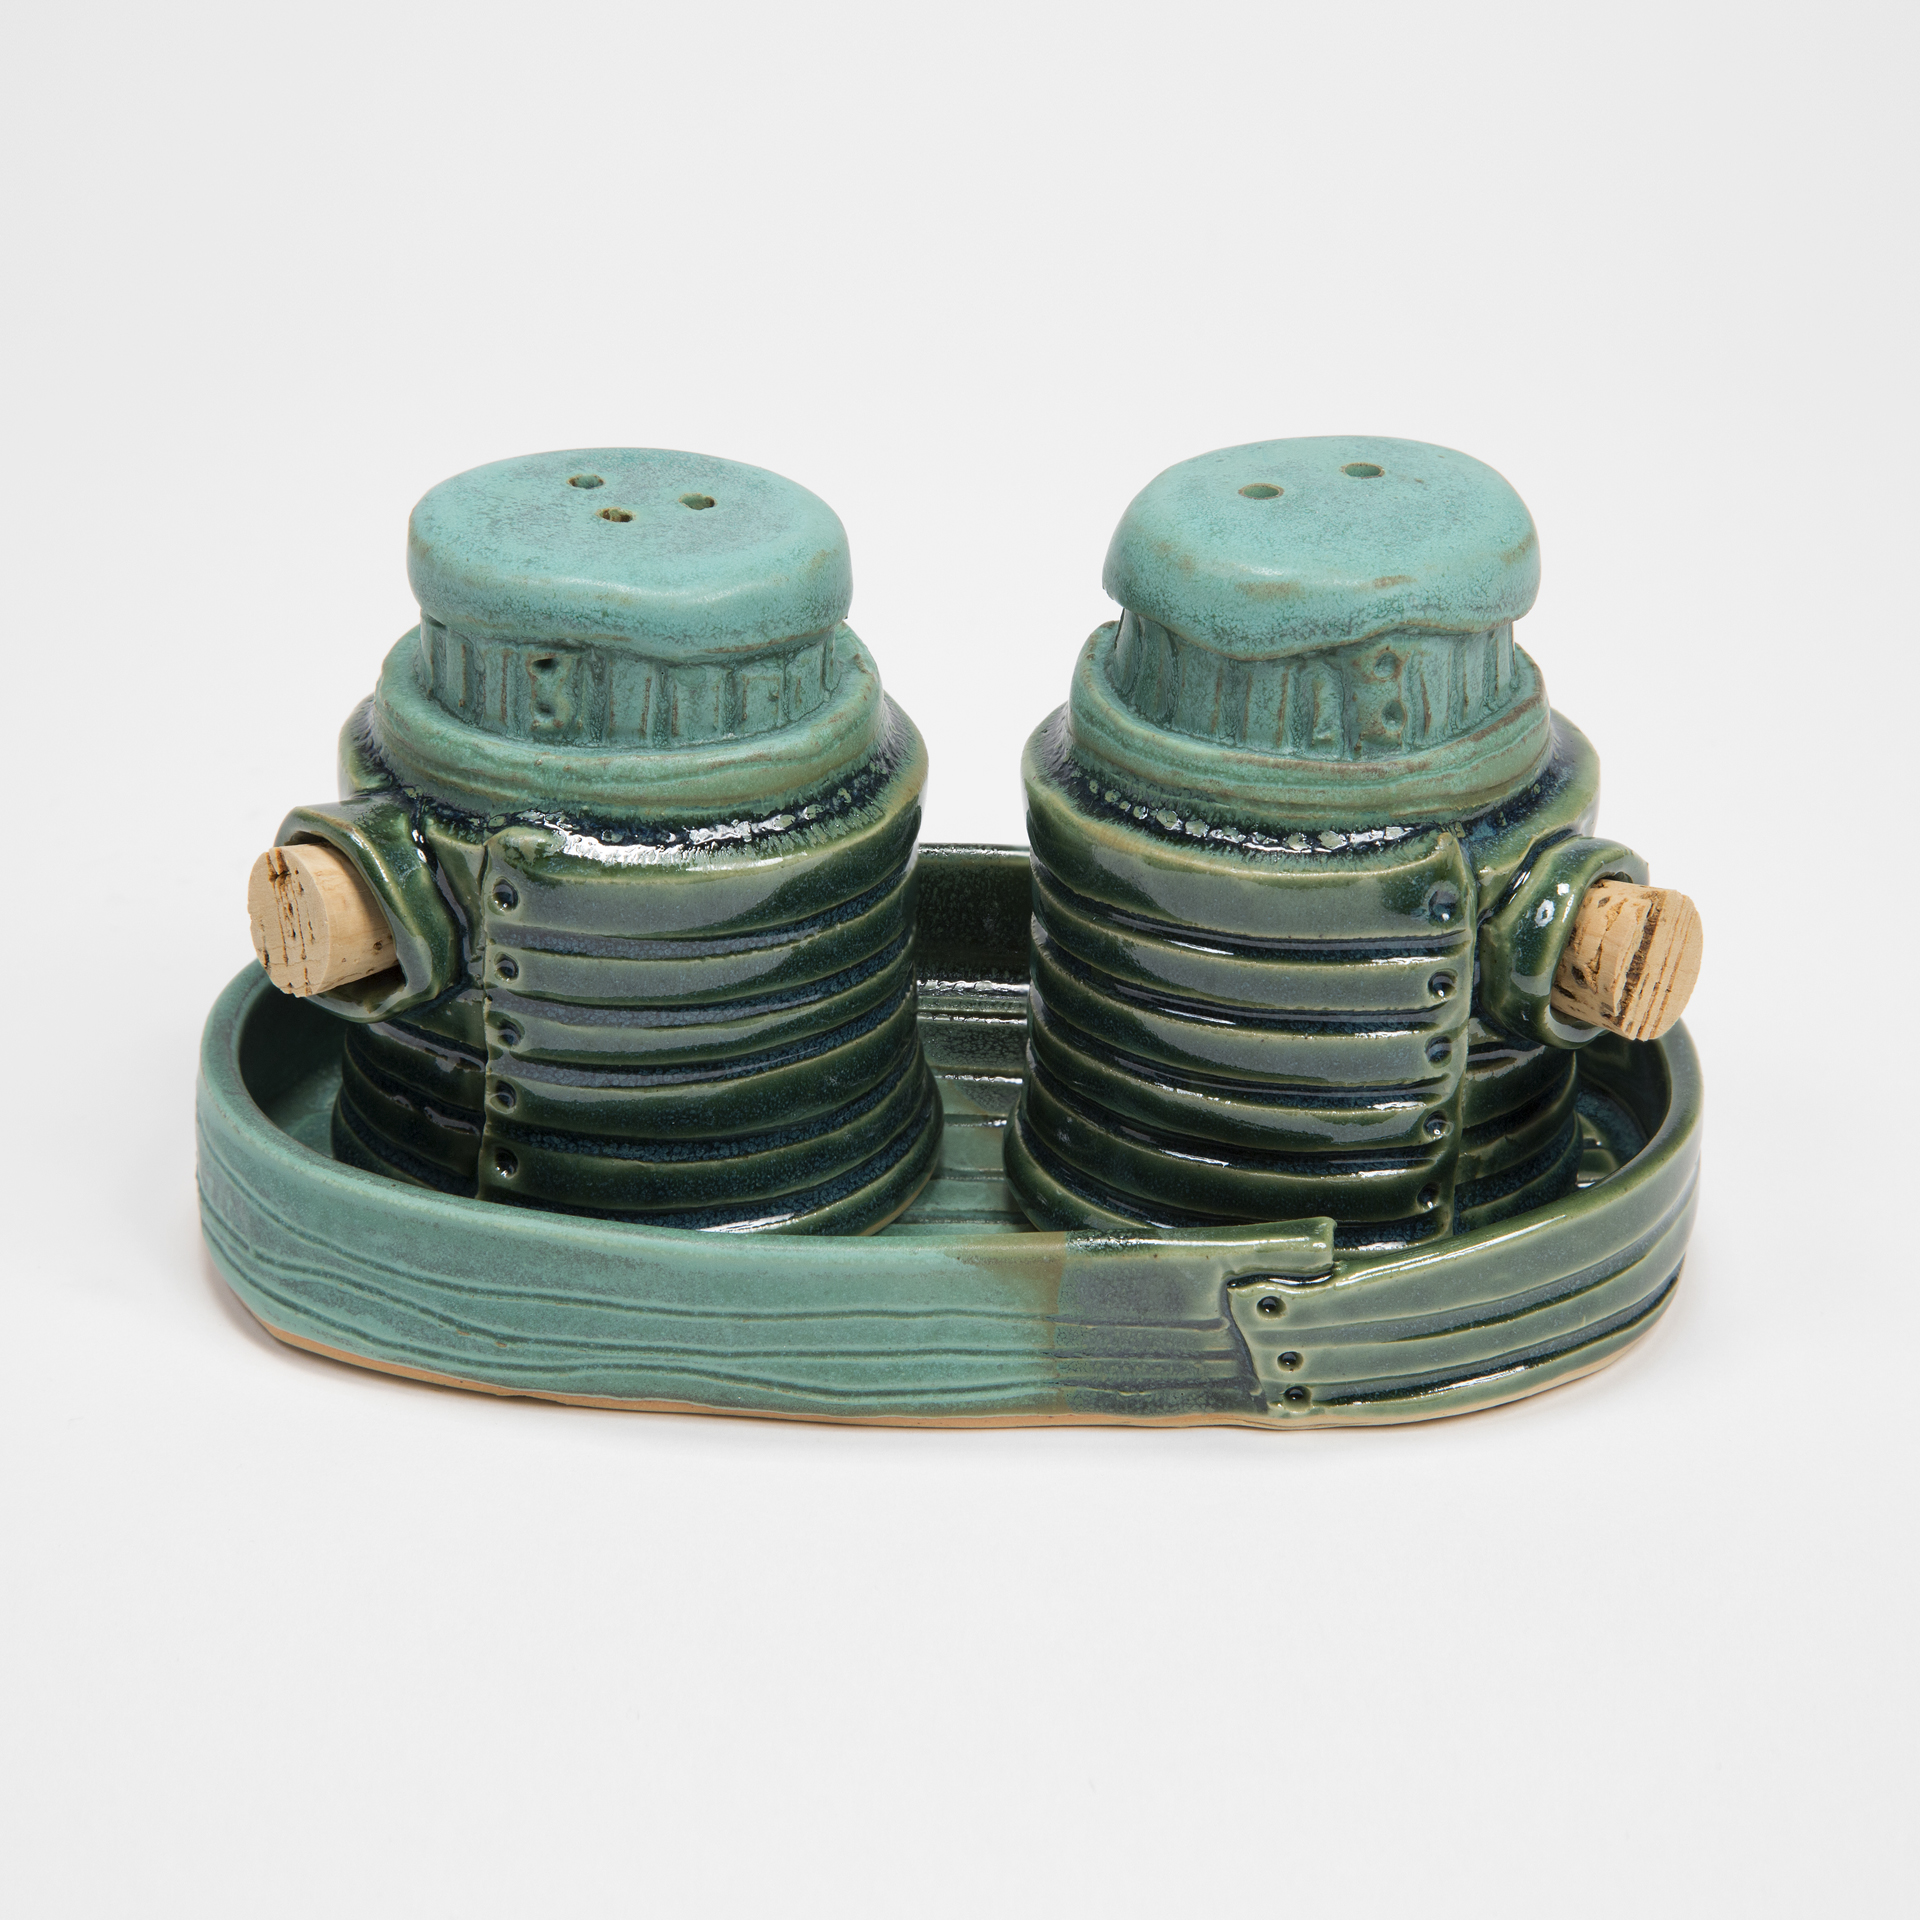 Multigreen Salt & Pepper Shakers with Tray